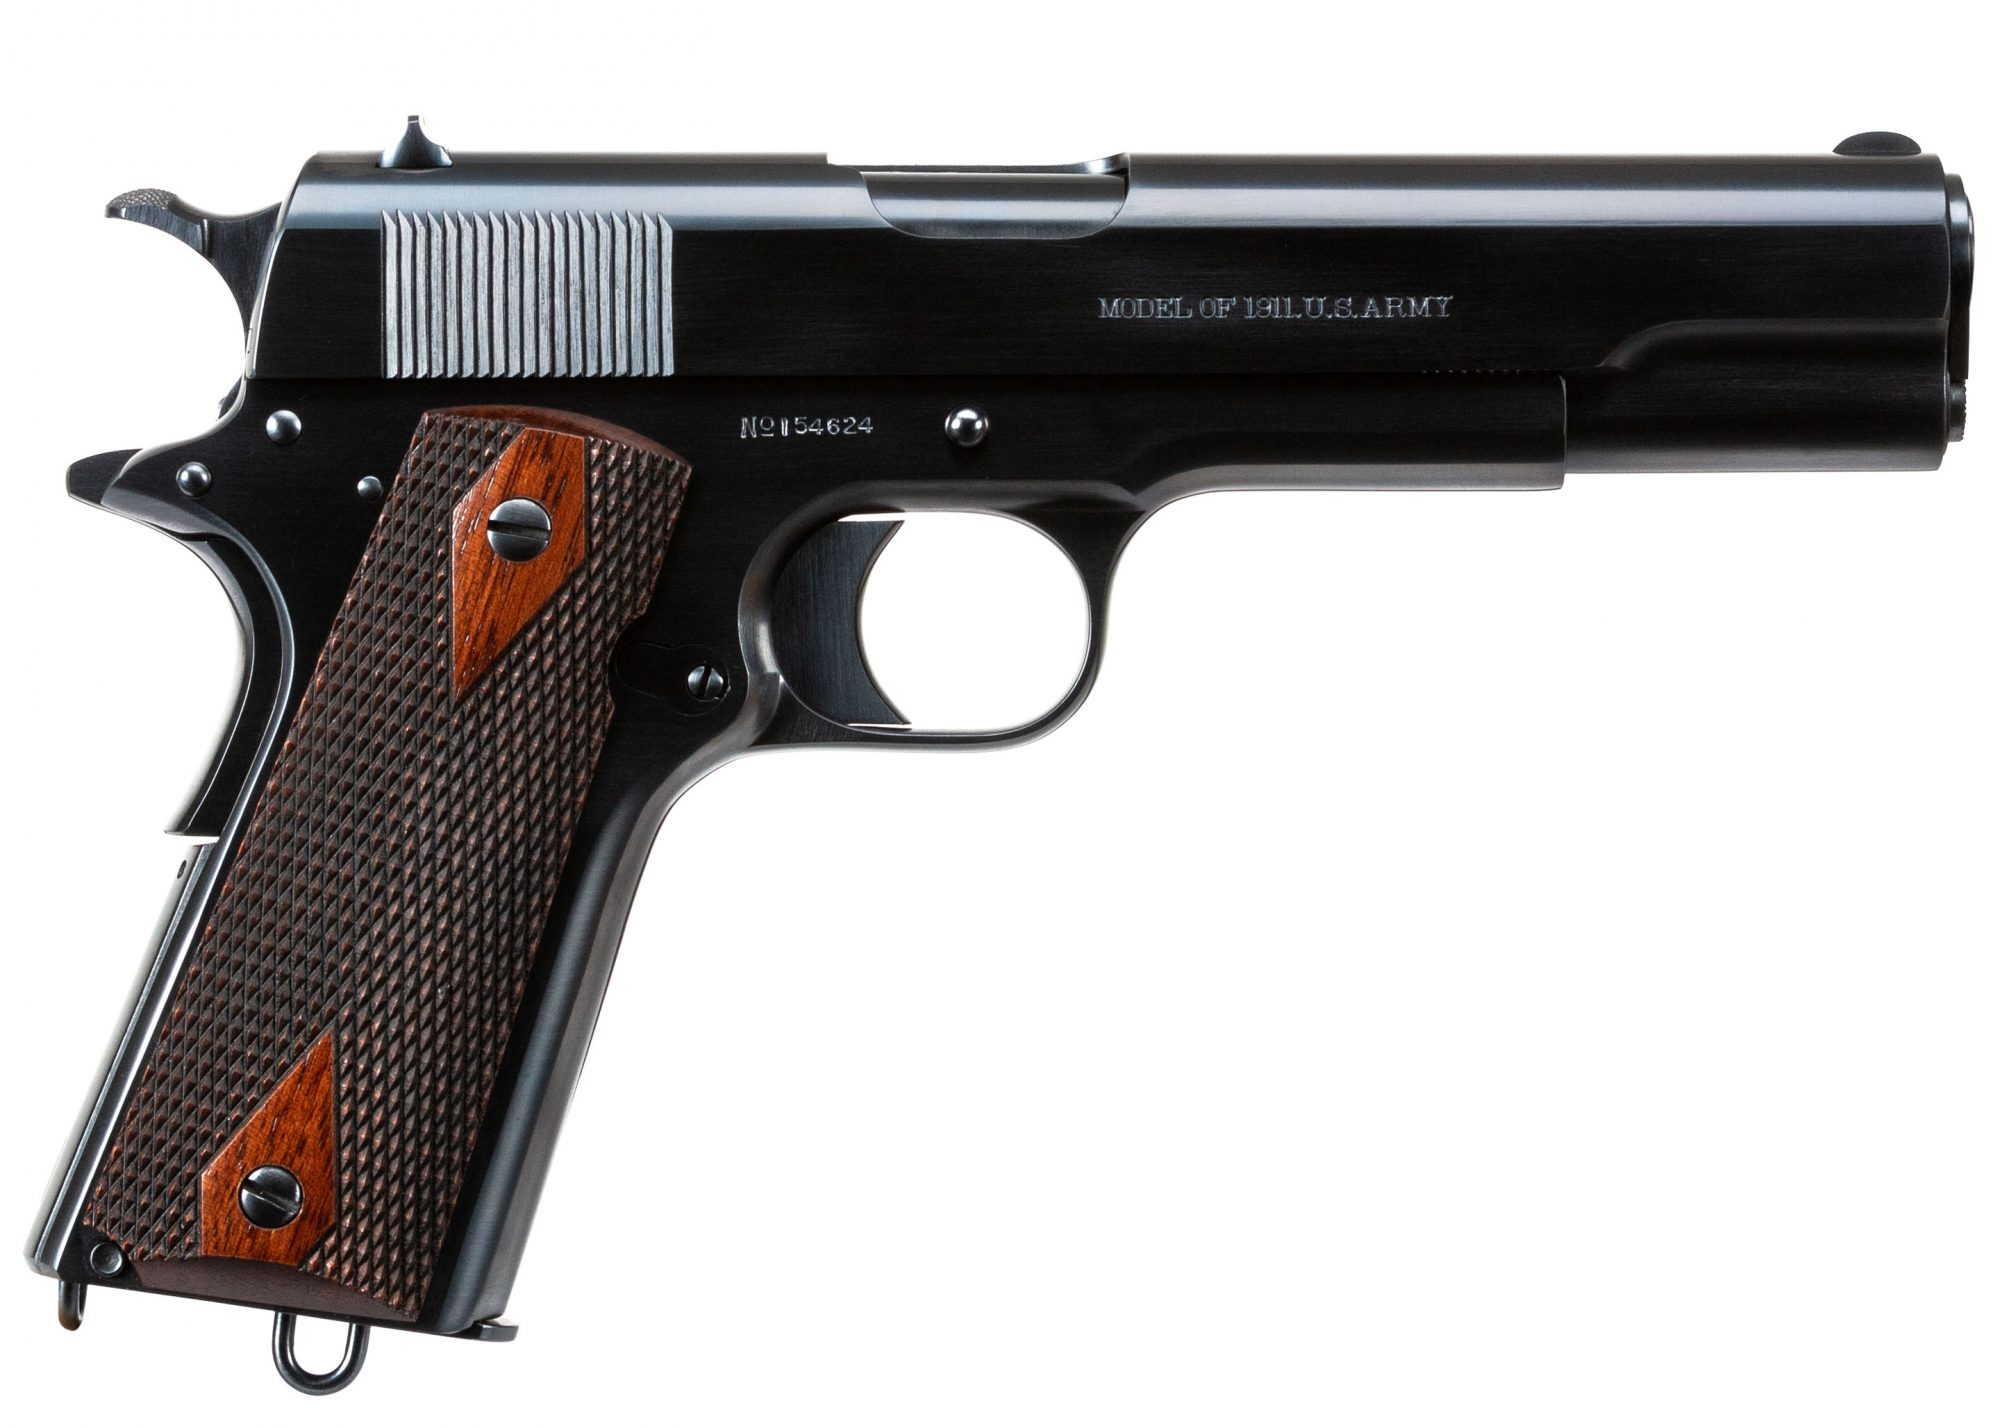 Photo of a restored Colt 1911 U.S. Army, restored by Turnbull Restoration of Bloomfield, NY